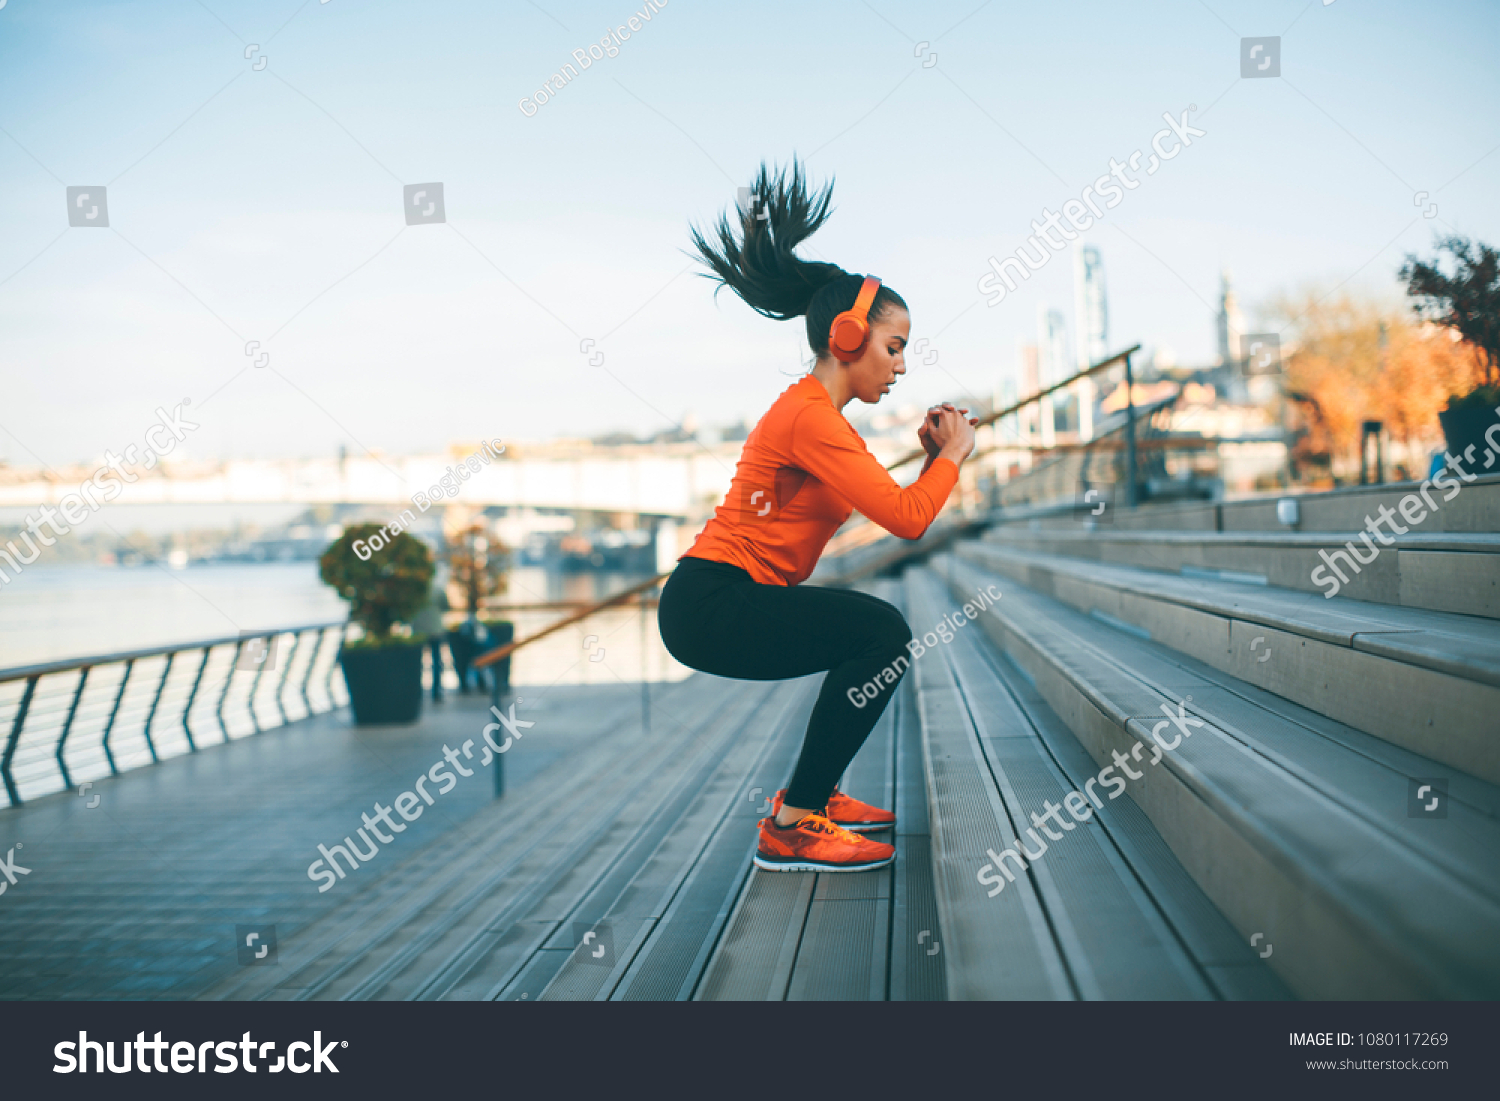 Fitness woman jumping outdoor in urban enviroment #1080117269